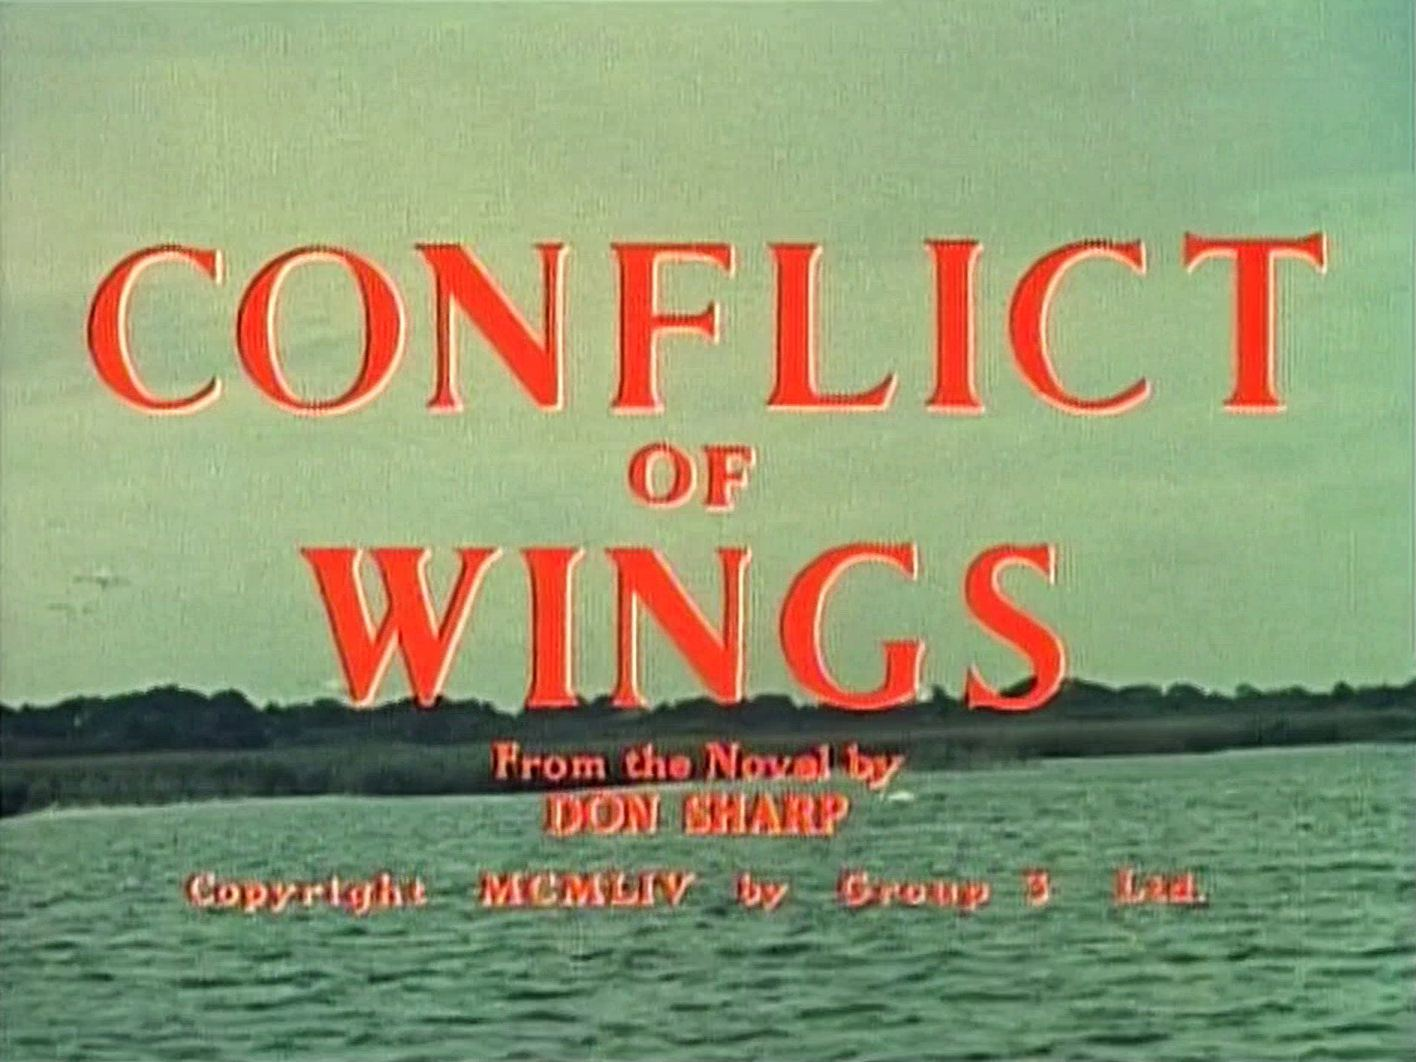 Opening credits from Conflict of Wings (1954) (1)